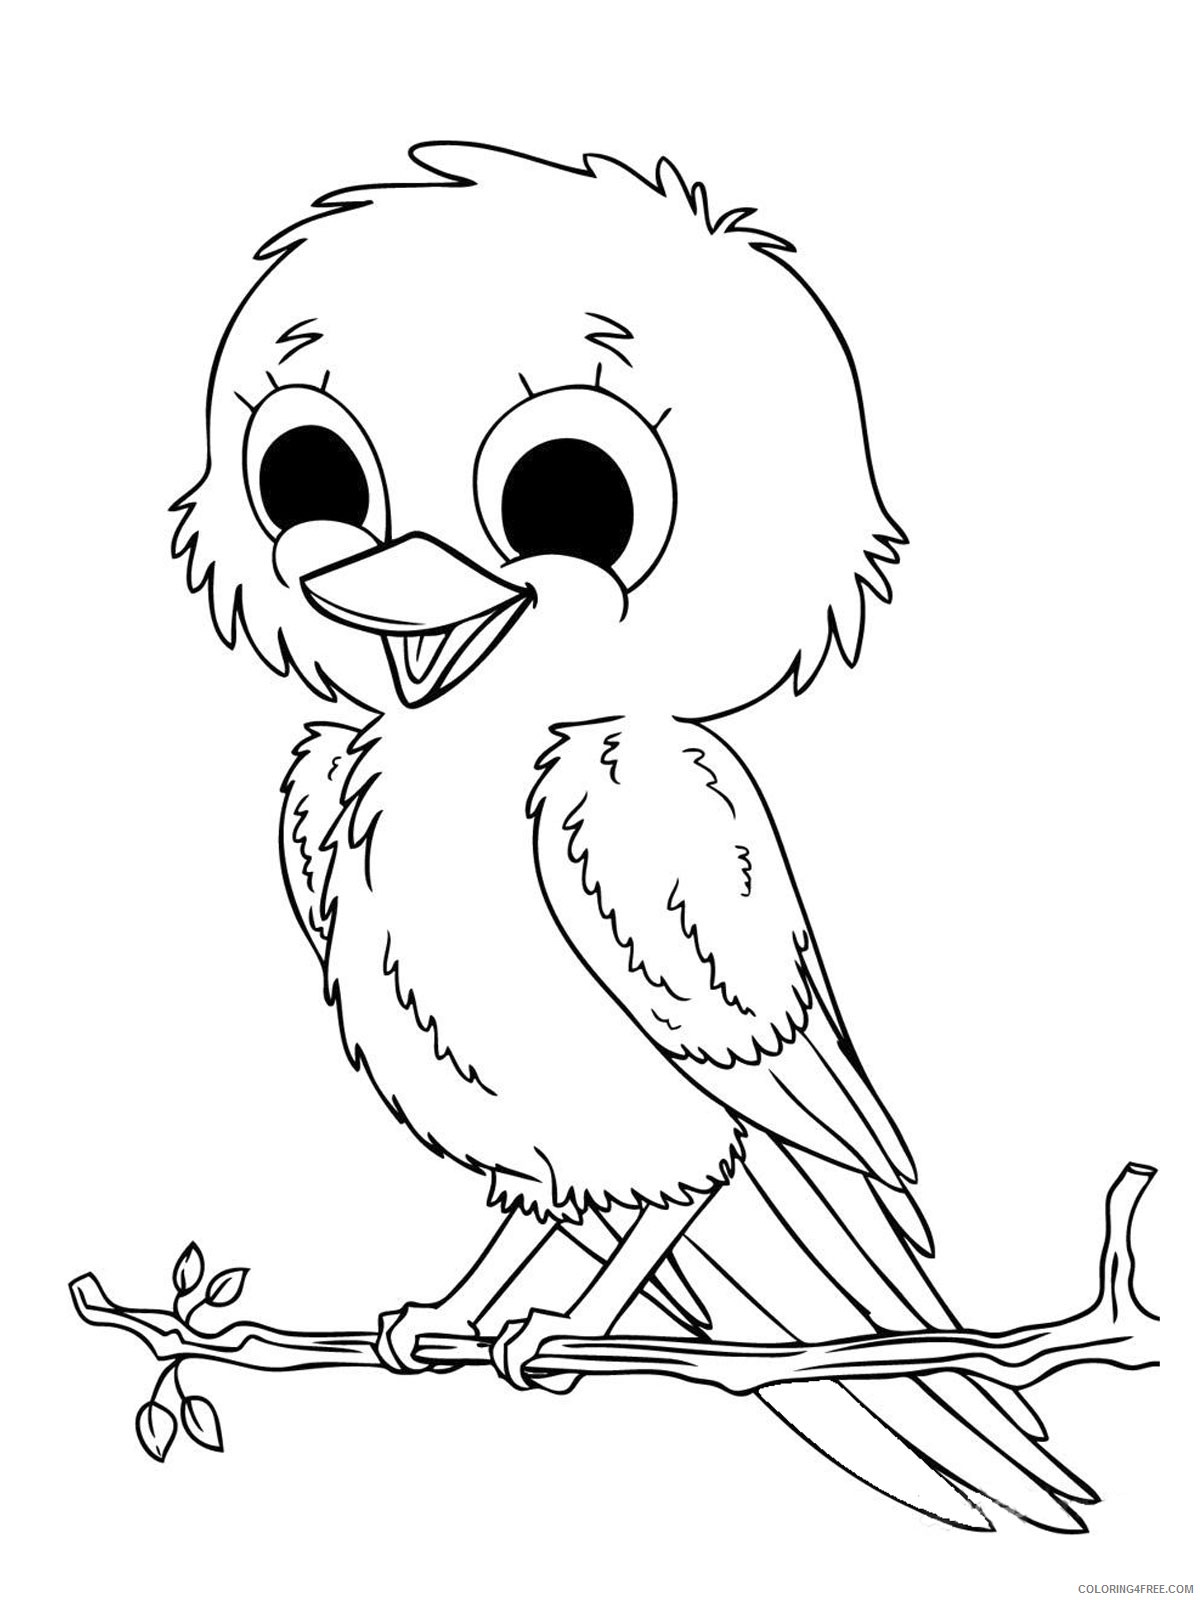 girls coloring pages of bird Coloring4free